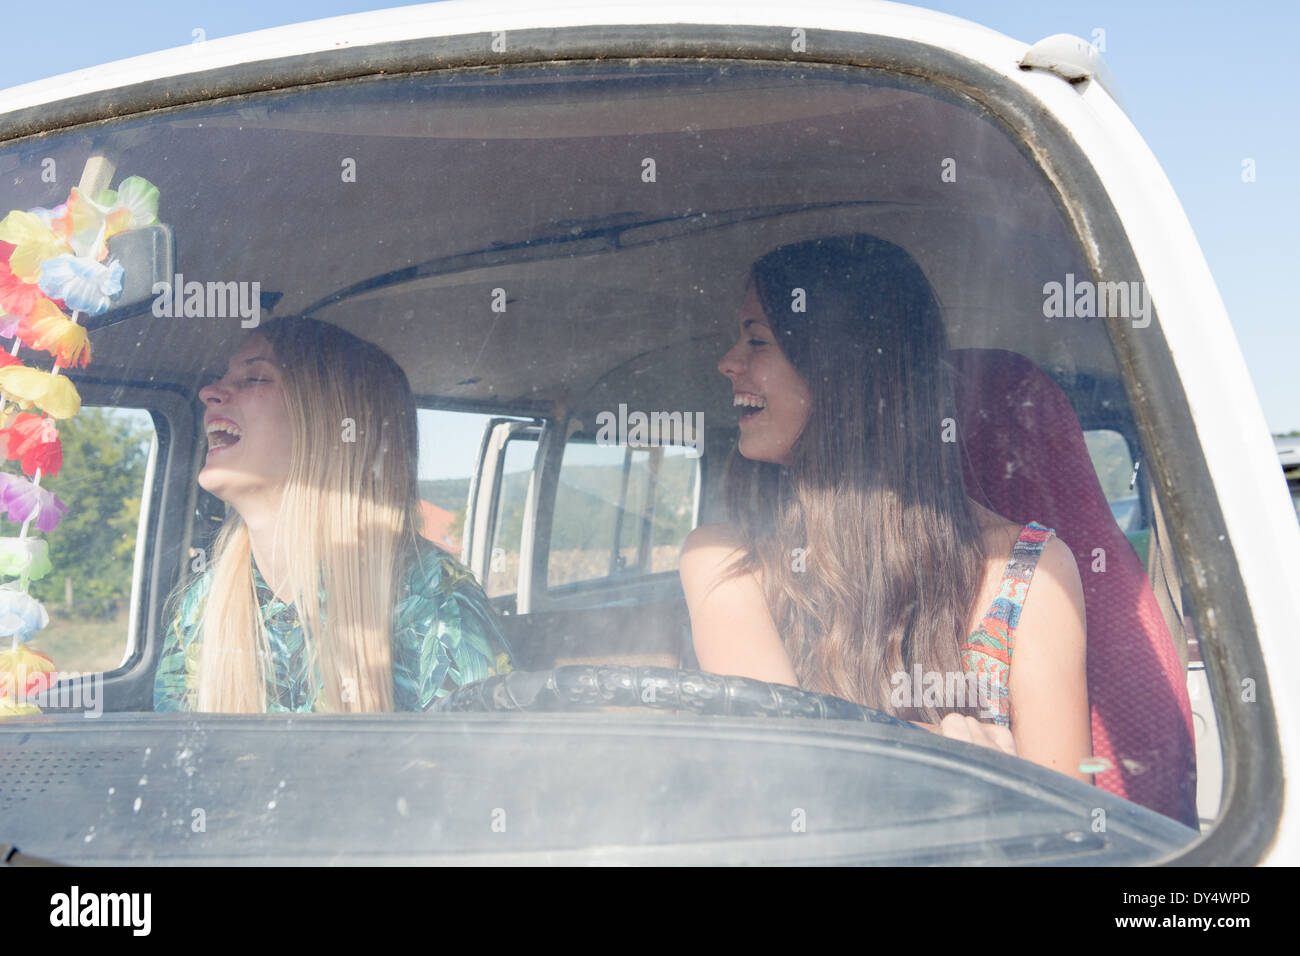 Young women inside campervan laughing - Stock Image